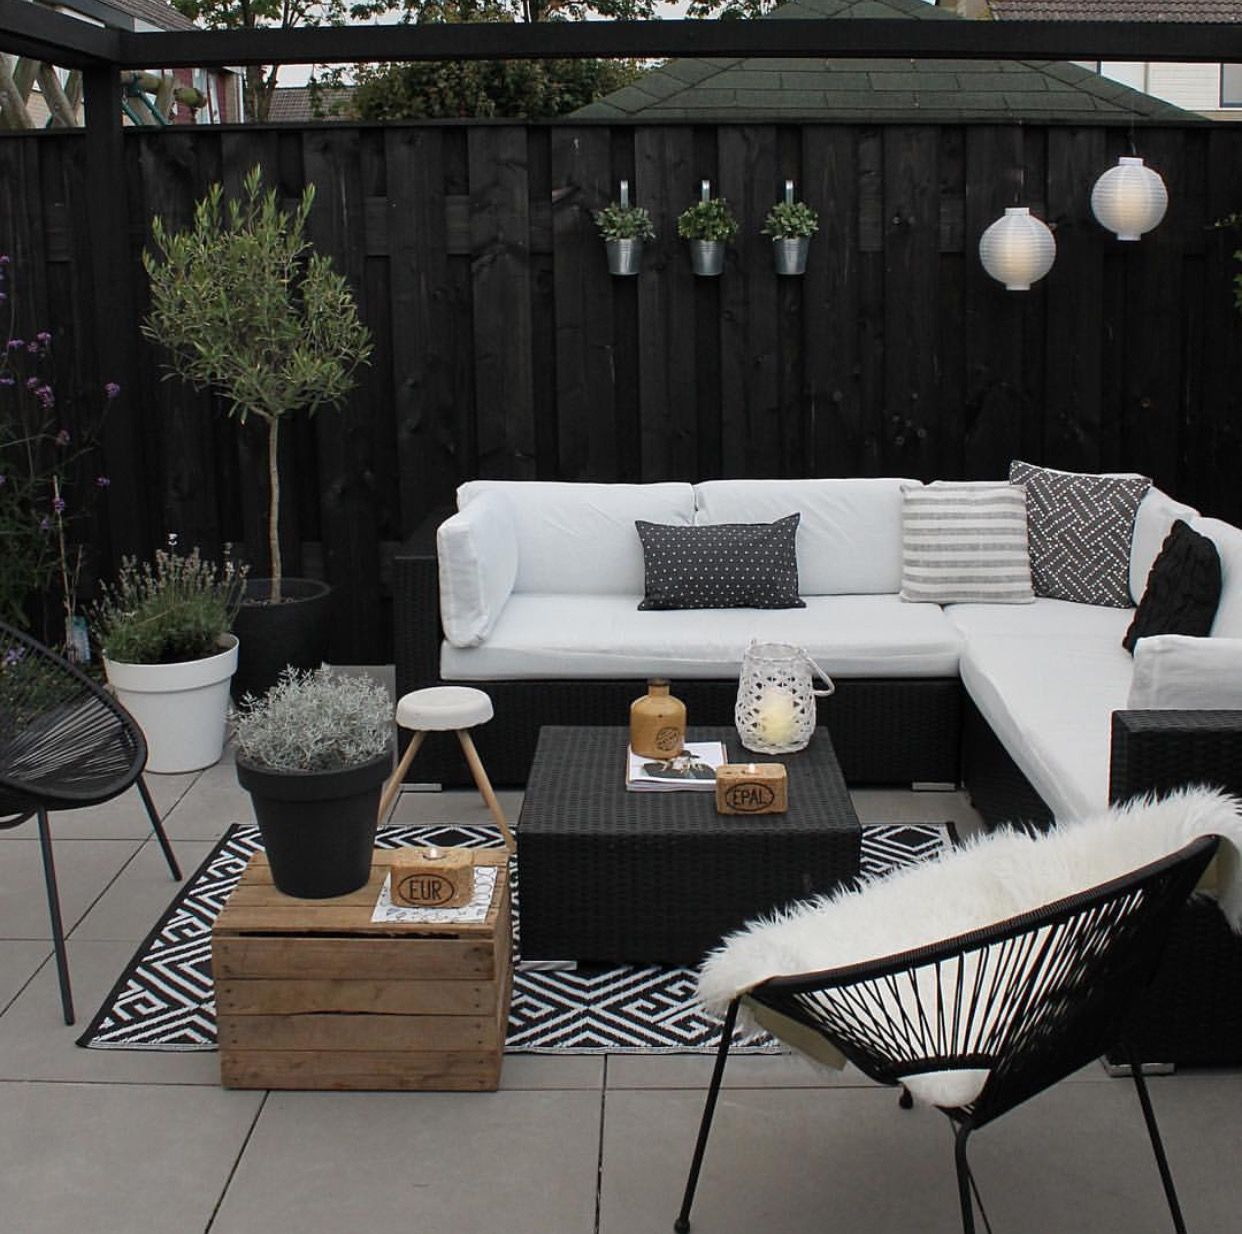 Salon Jardin Modulable Charmant Trent Krienke Tkrienke On Pinterest Of 32 Beau Salon Jardin Modulable